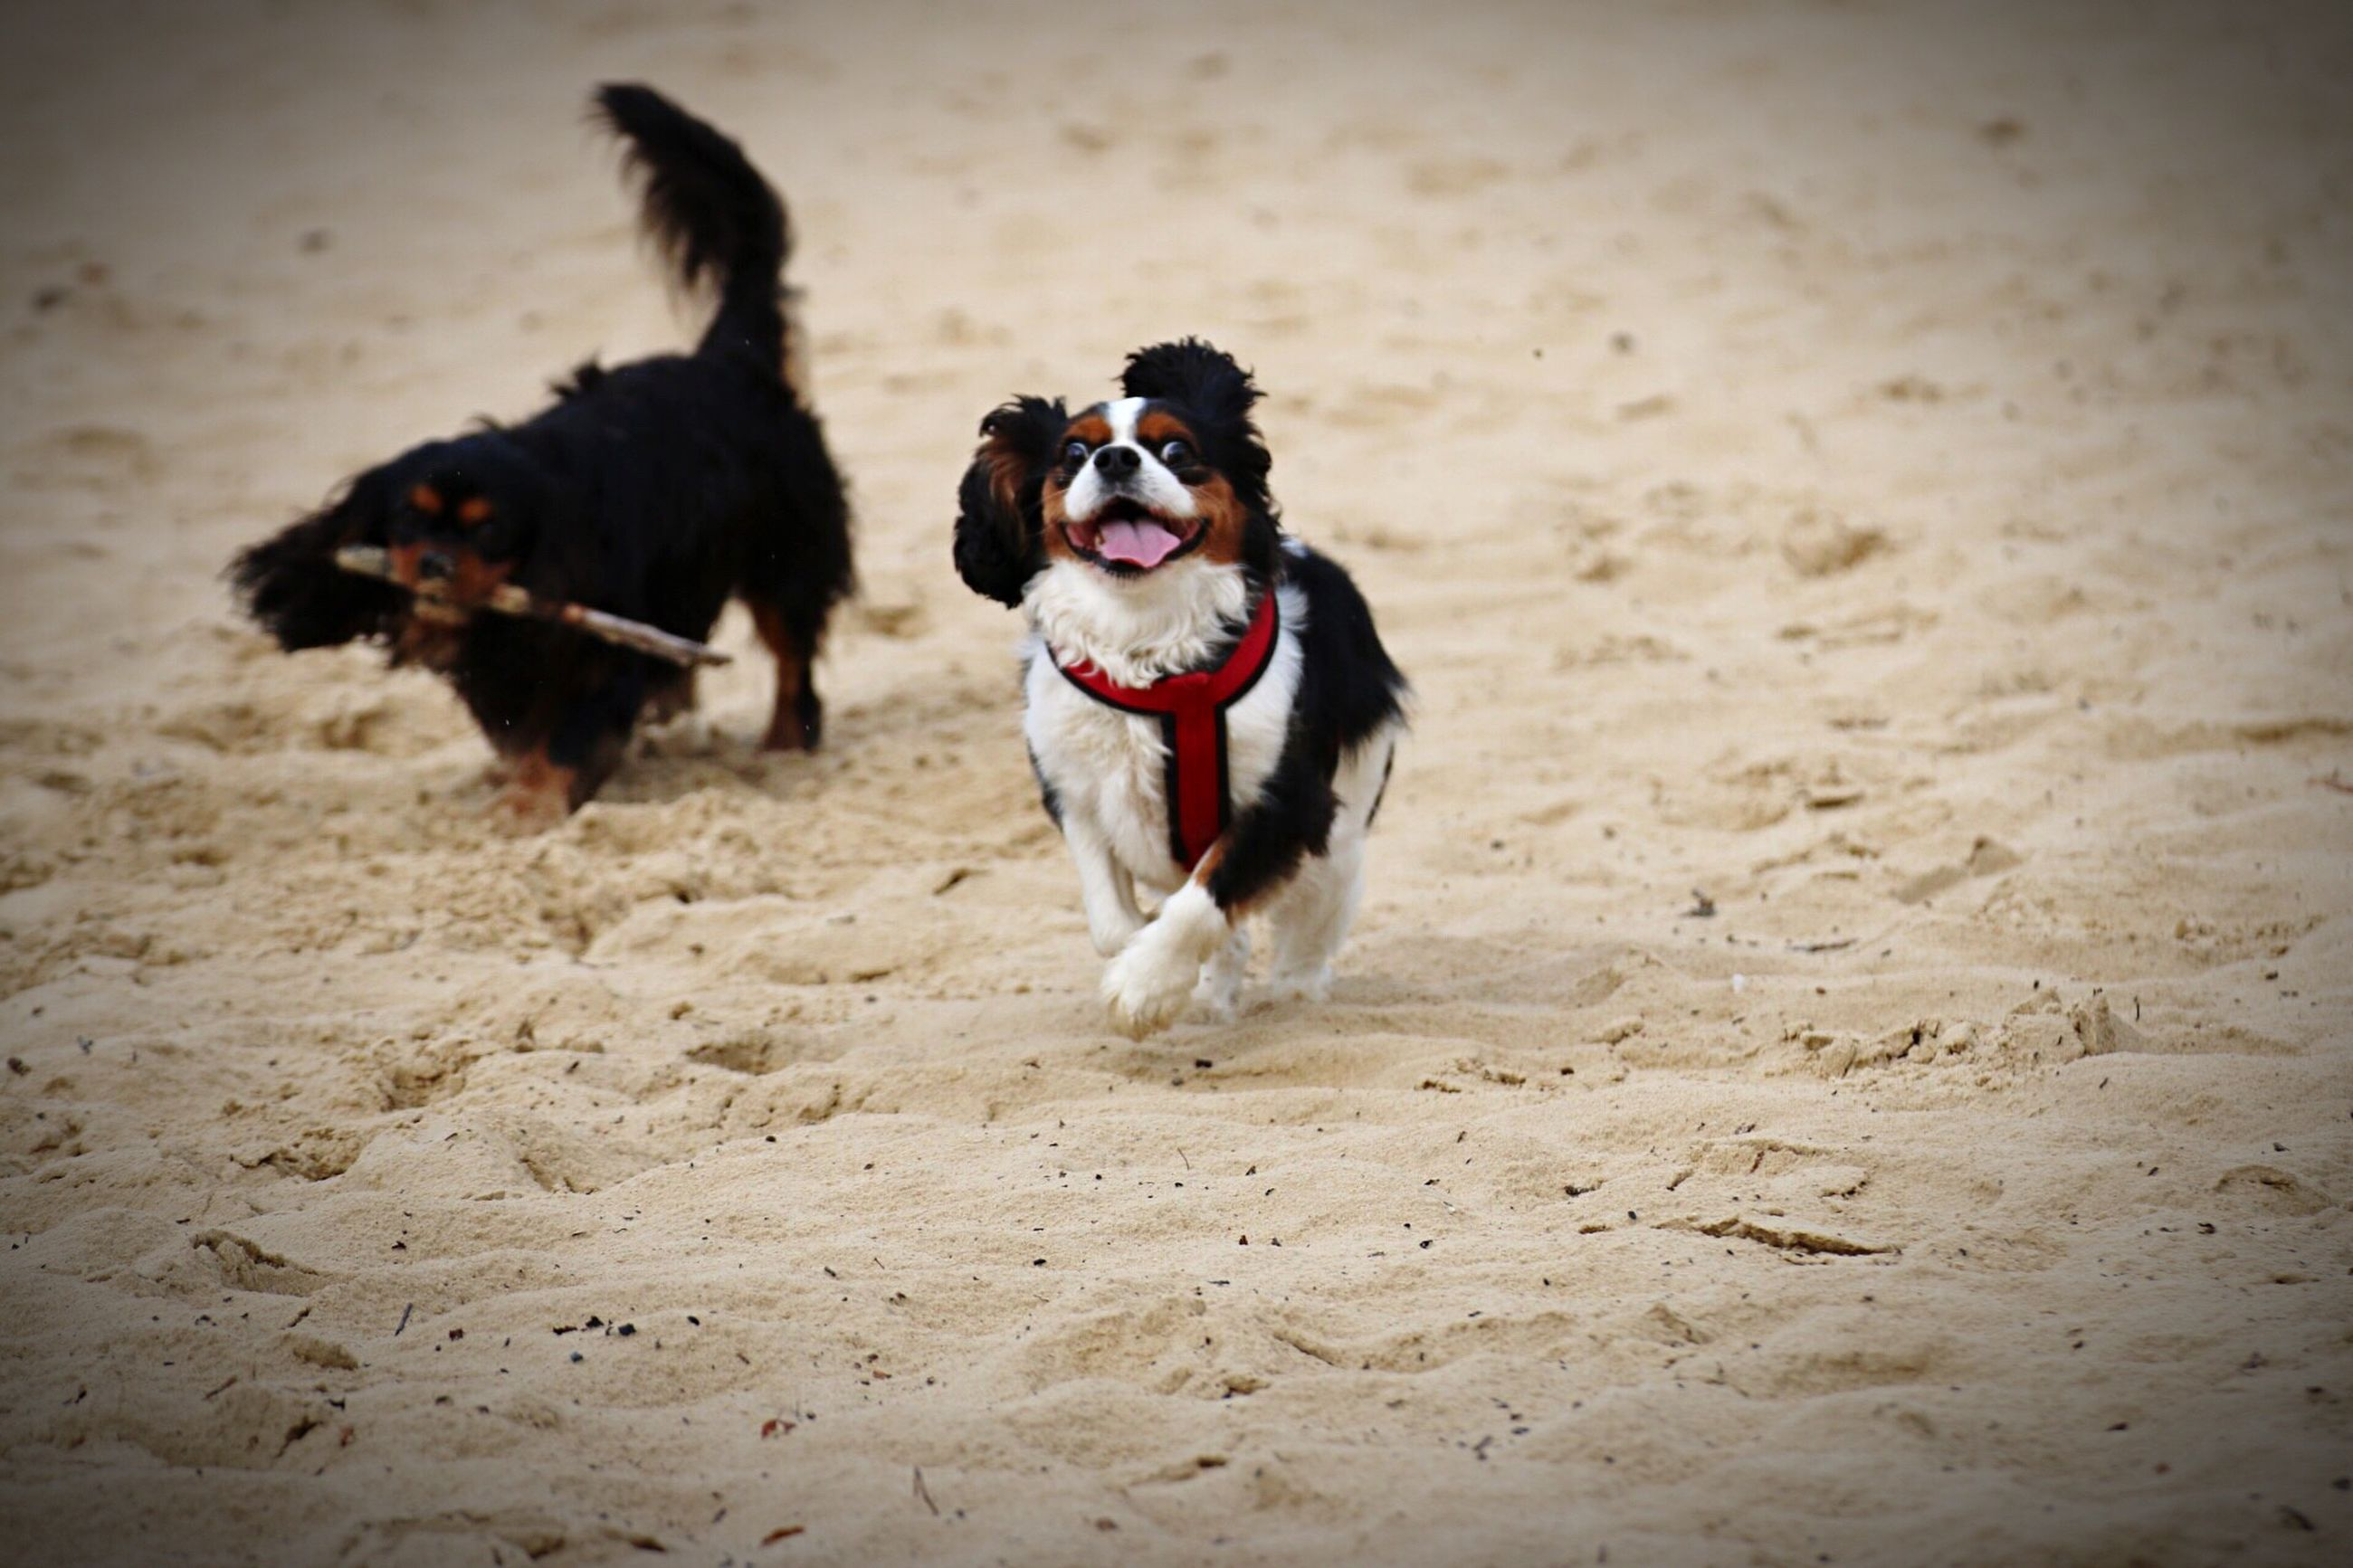 domestic animals, dog, pets, animal themes, sand, one animal, mammal, playing, beach, animal, zoology, loyalty, pampered pets, outdoors, panting, vacations, jack russell terrier, riverbank